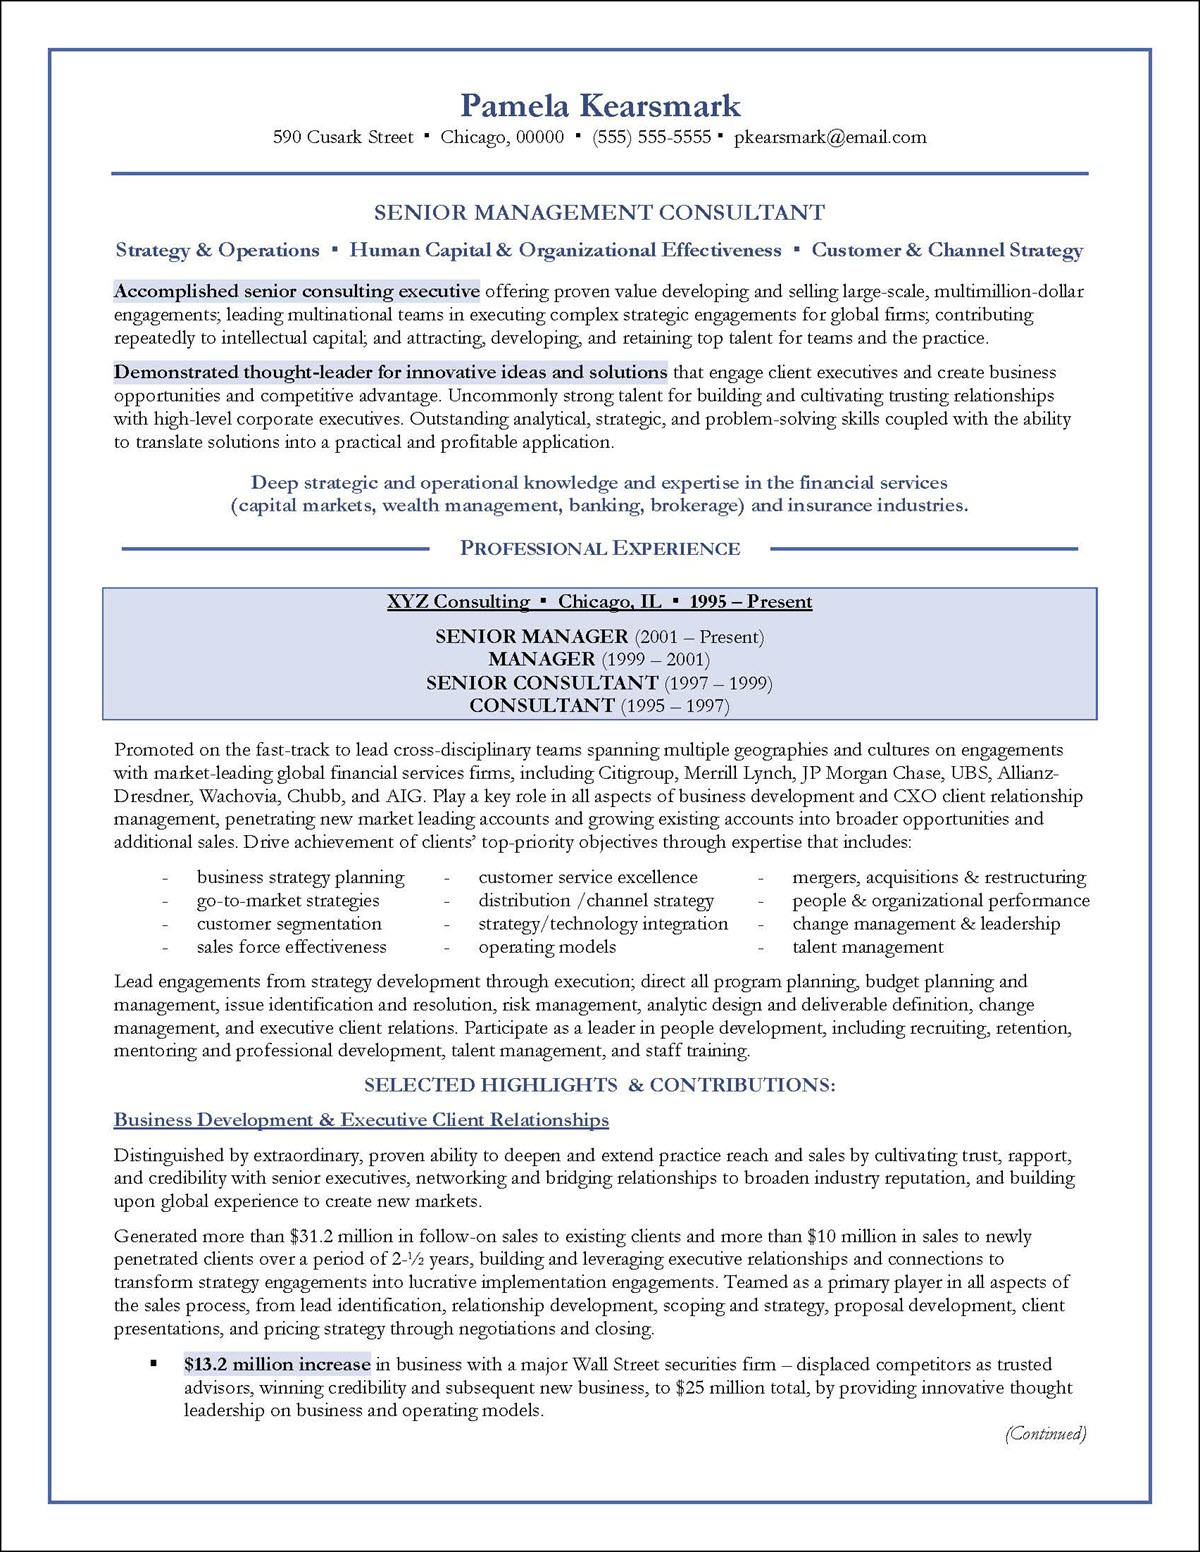 Management Consulting Resume Example Page 1  Wealth Management Resume